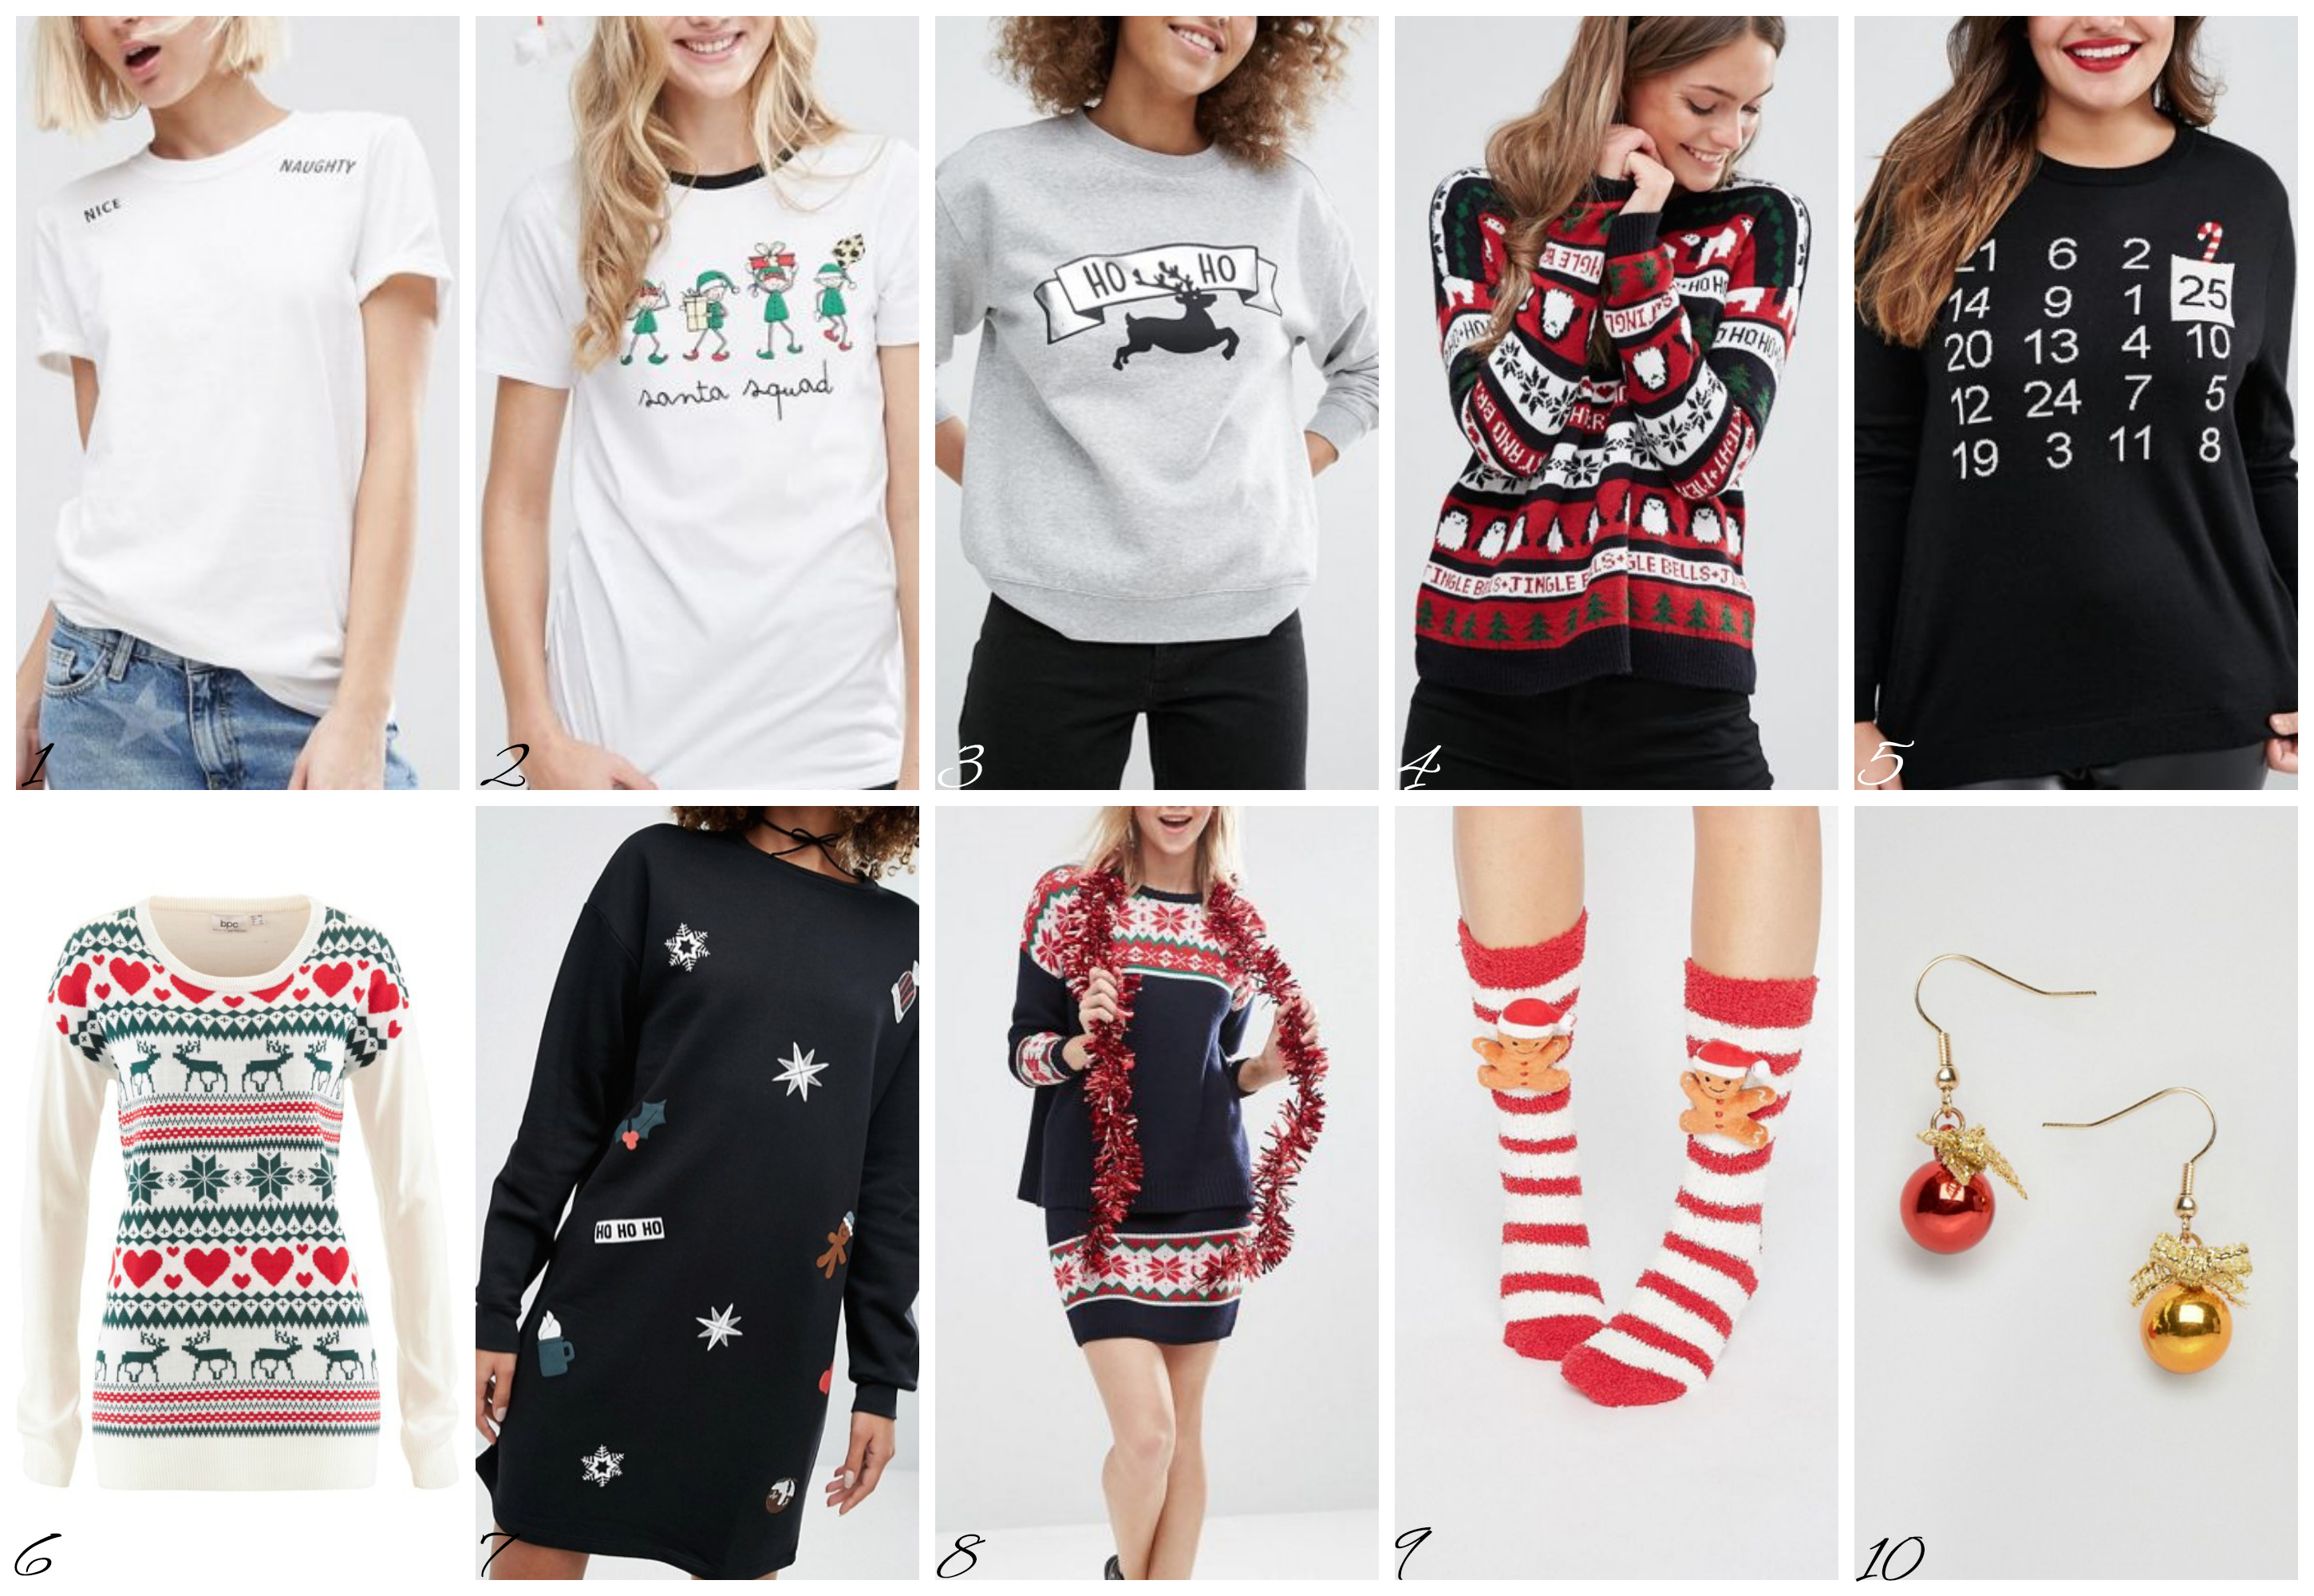 Top del mese. Moda donna Natale - Top of the month. Christmas Fashion.